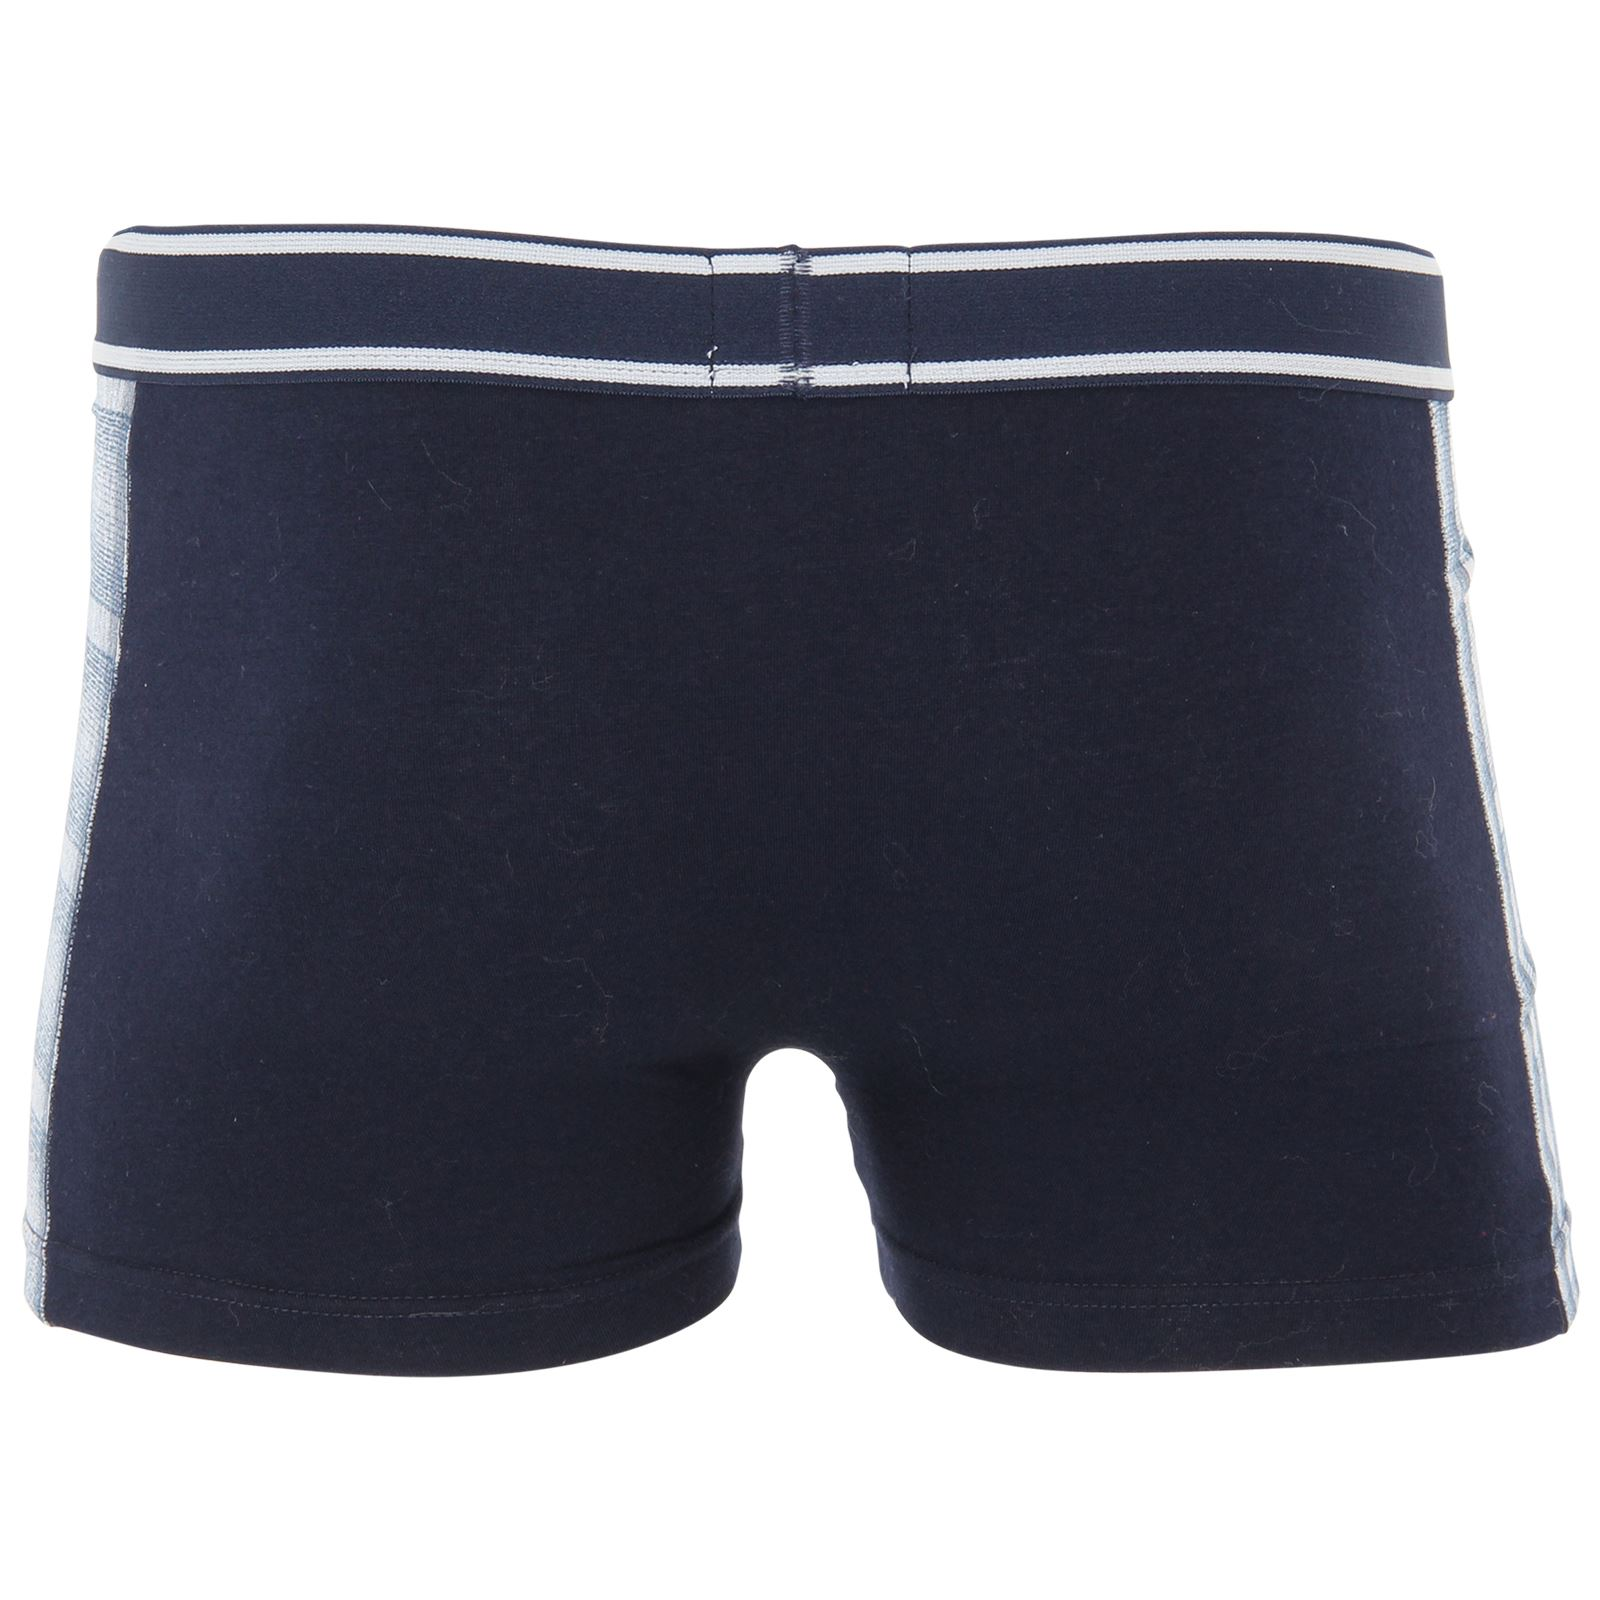 Find great deals on eBay for cotton boxers. Shop with confidence.